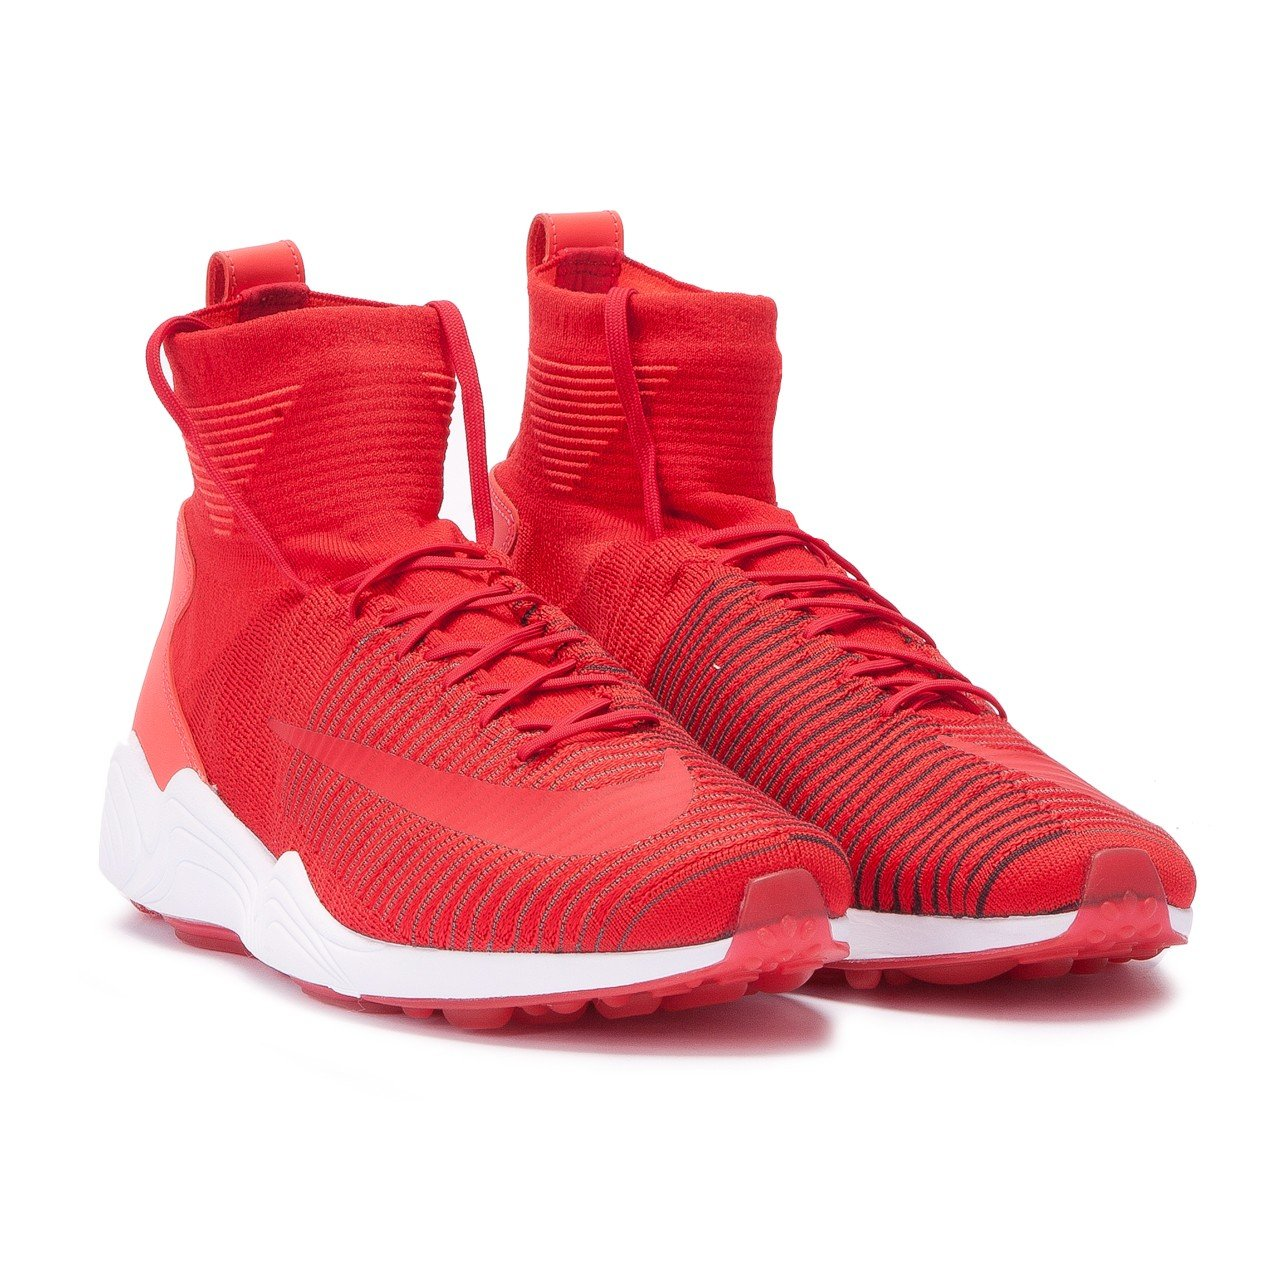 NIKE Zoom Mercurial Xi Fk Mens Hi Top Trainers 844626 Sneakers Shoes B01HHIITHS 8 D(M) US|University Red / University Red-dark Grey